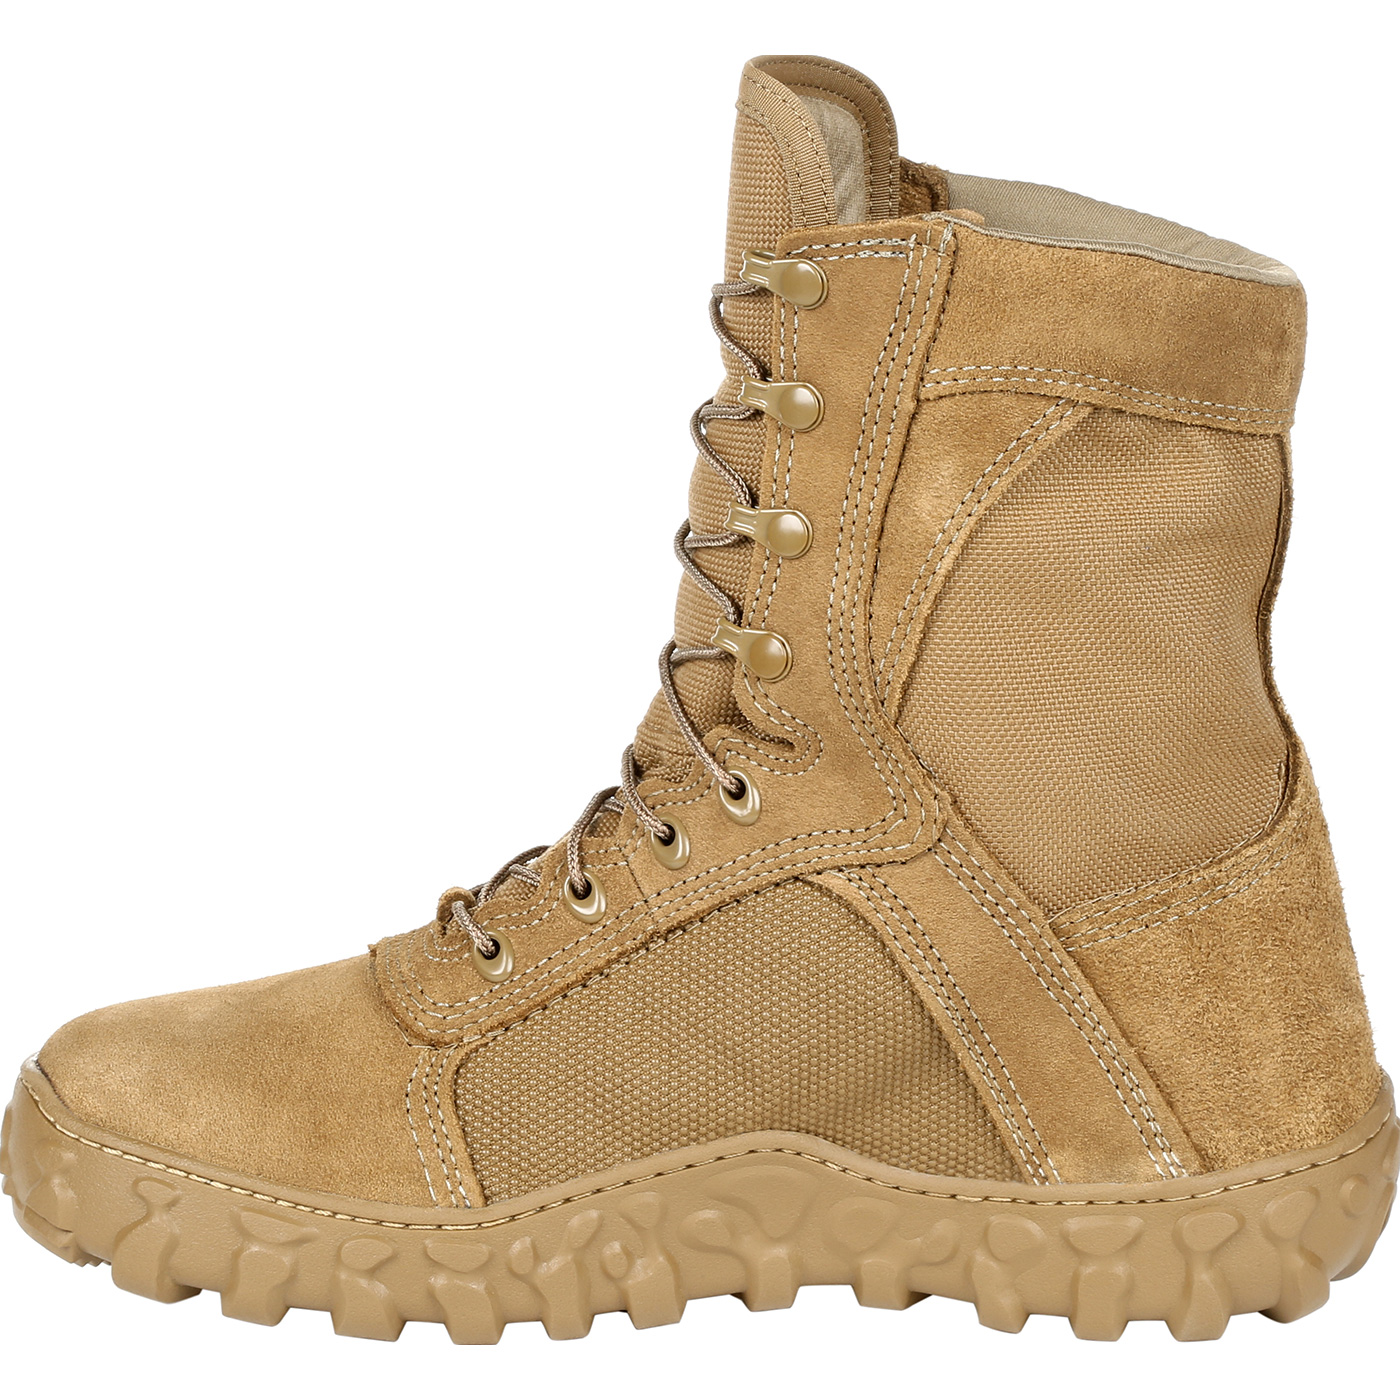 Shop our selection of Safety Shoes Made in the US.